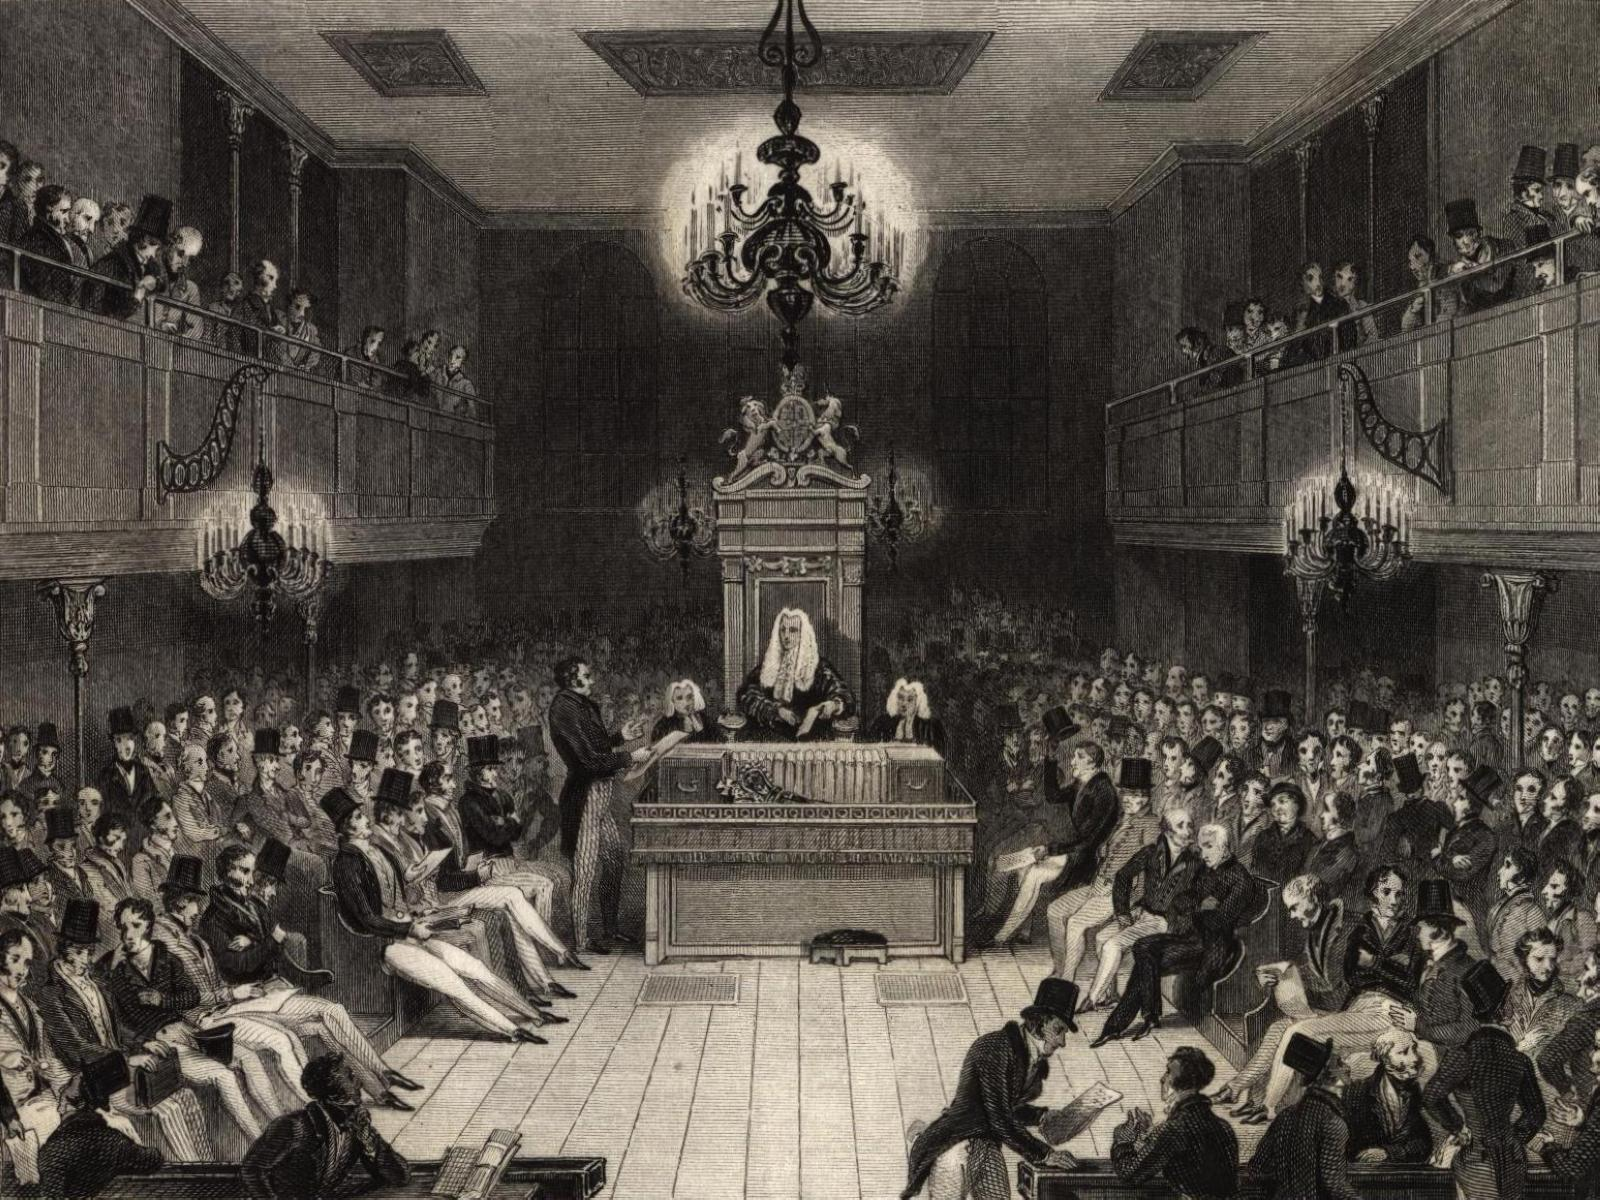 a discussion of the impact of the british laws in the 18th centrury Religion and the founding of the american republic century america came in a portent of major spiritual developments throughout the british.